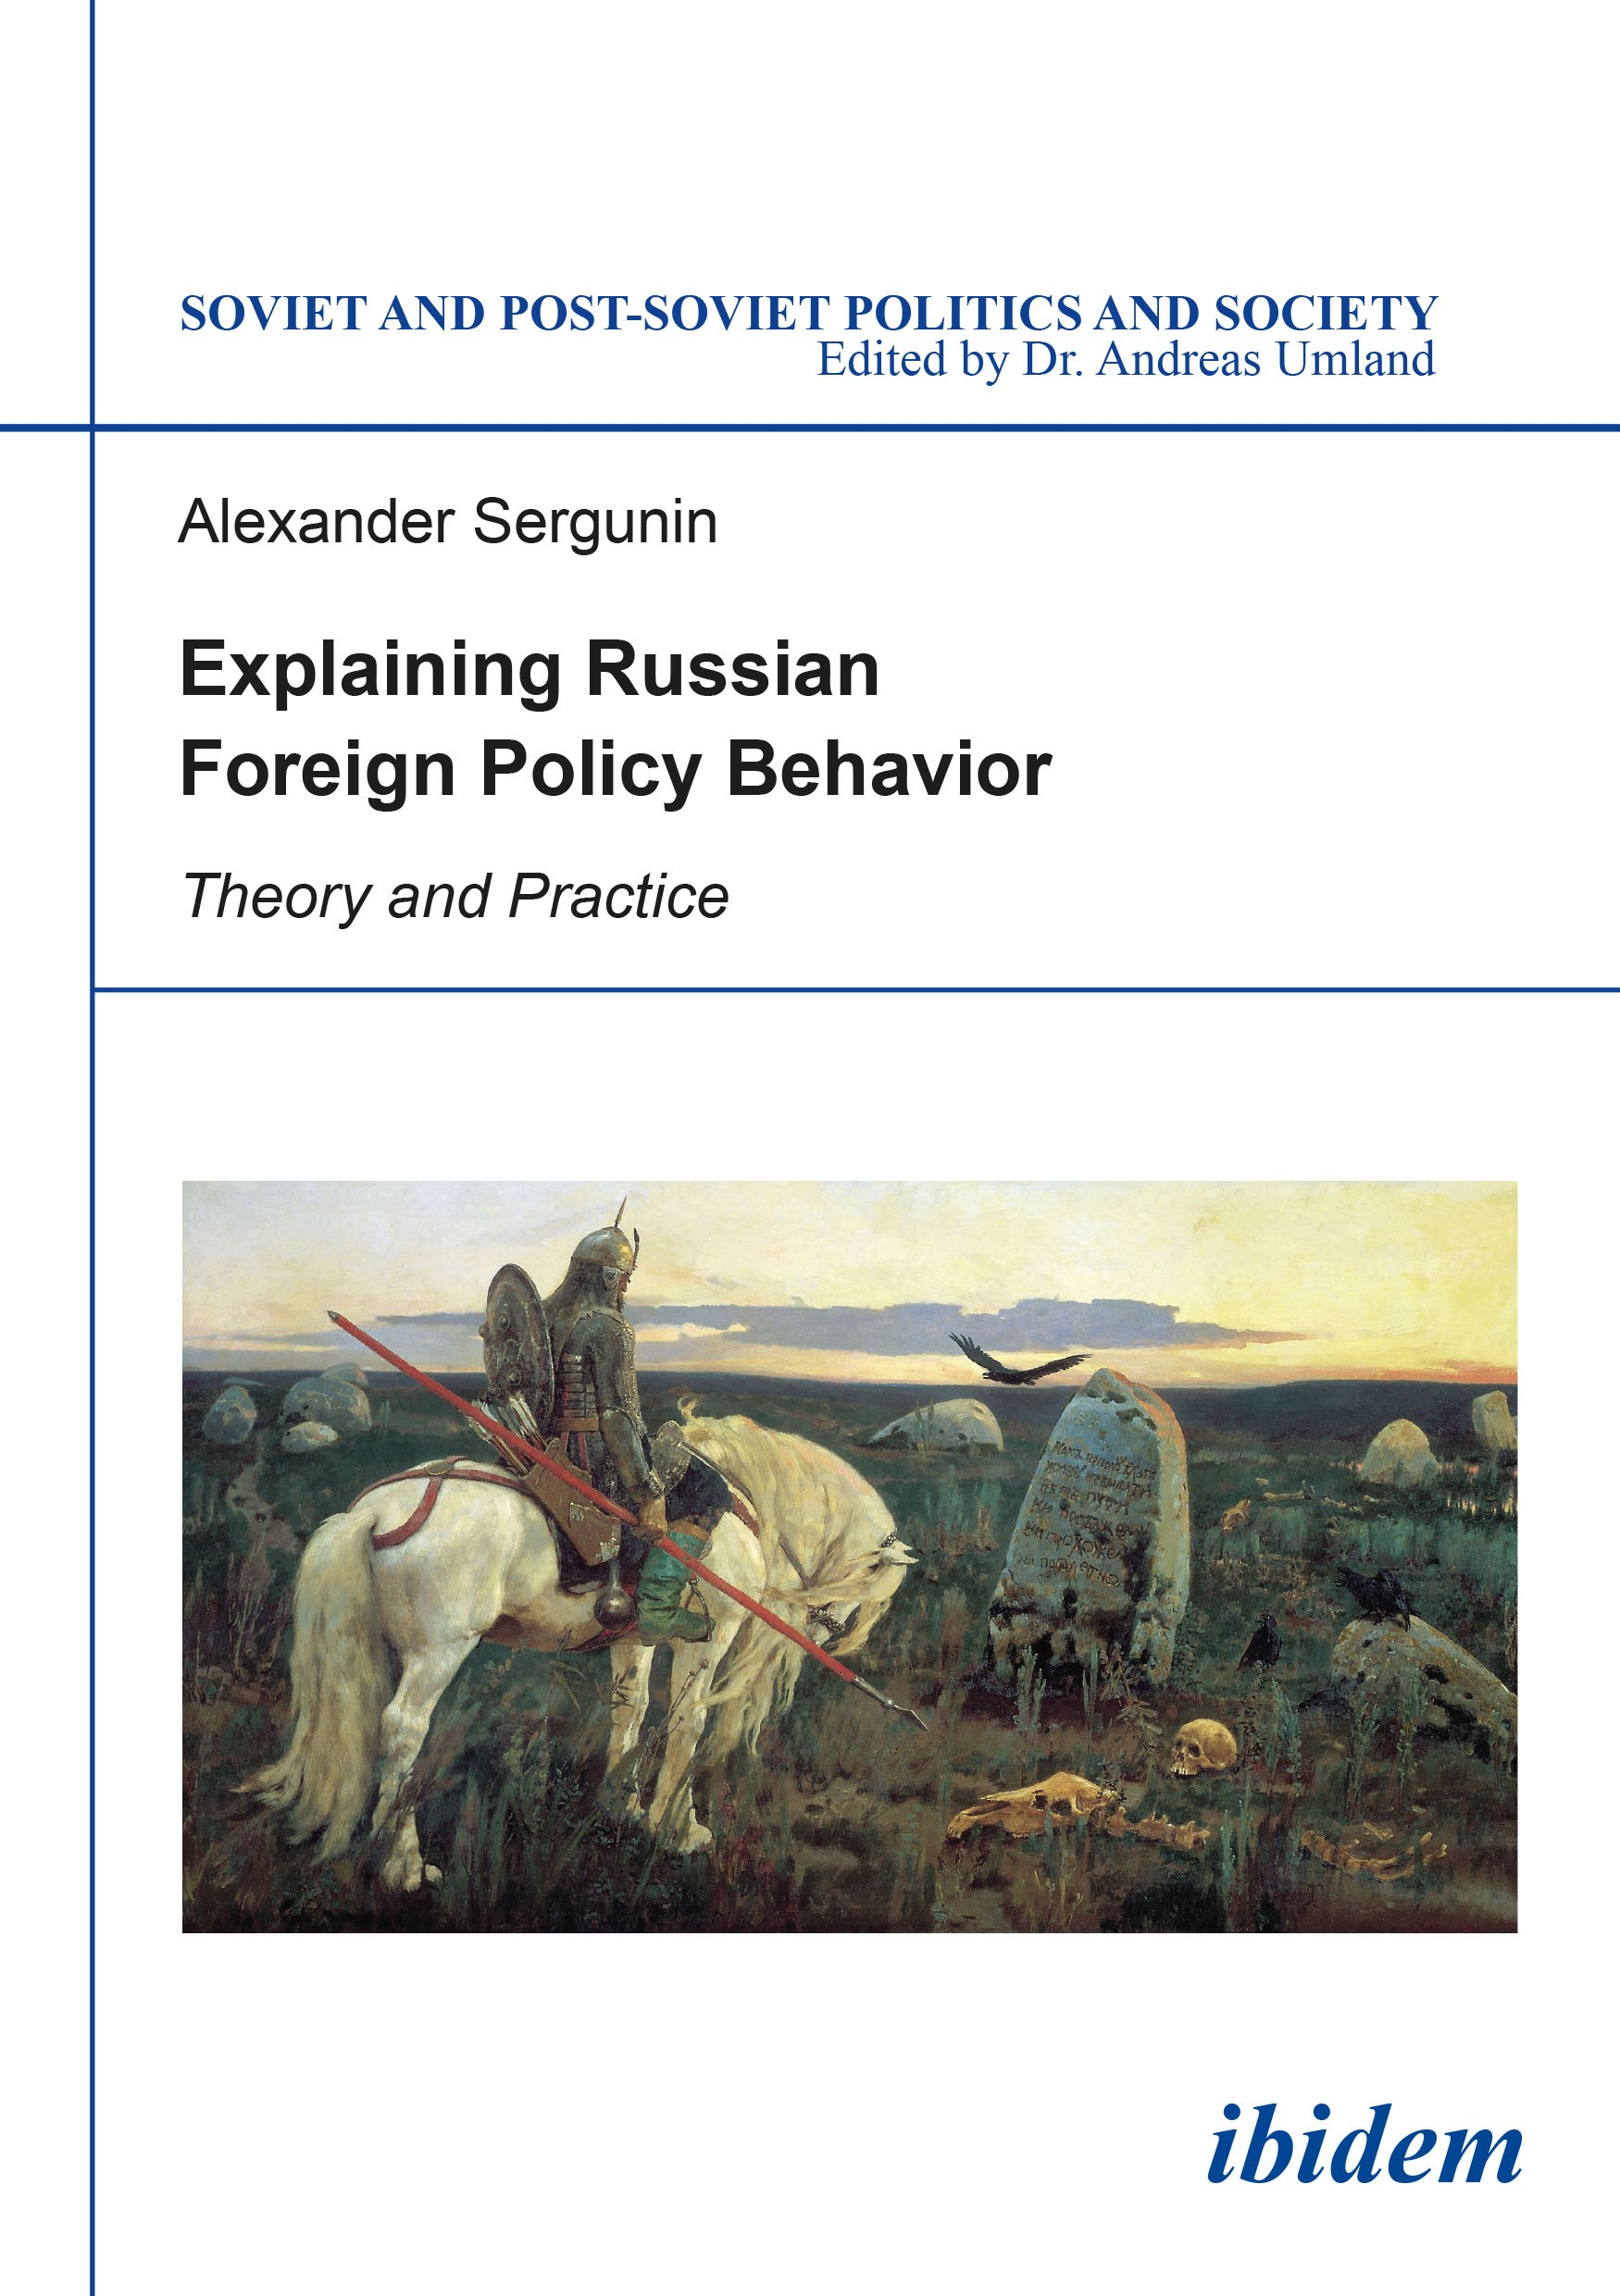 Explaining Russian Foreign Policy Behavior